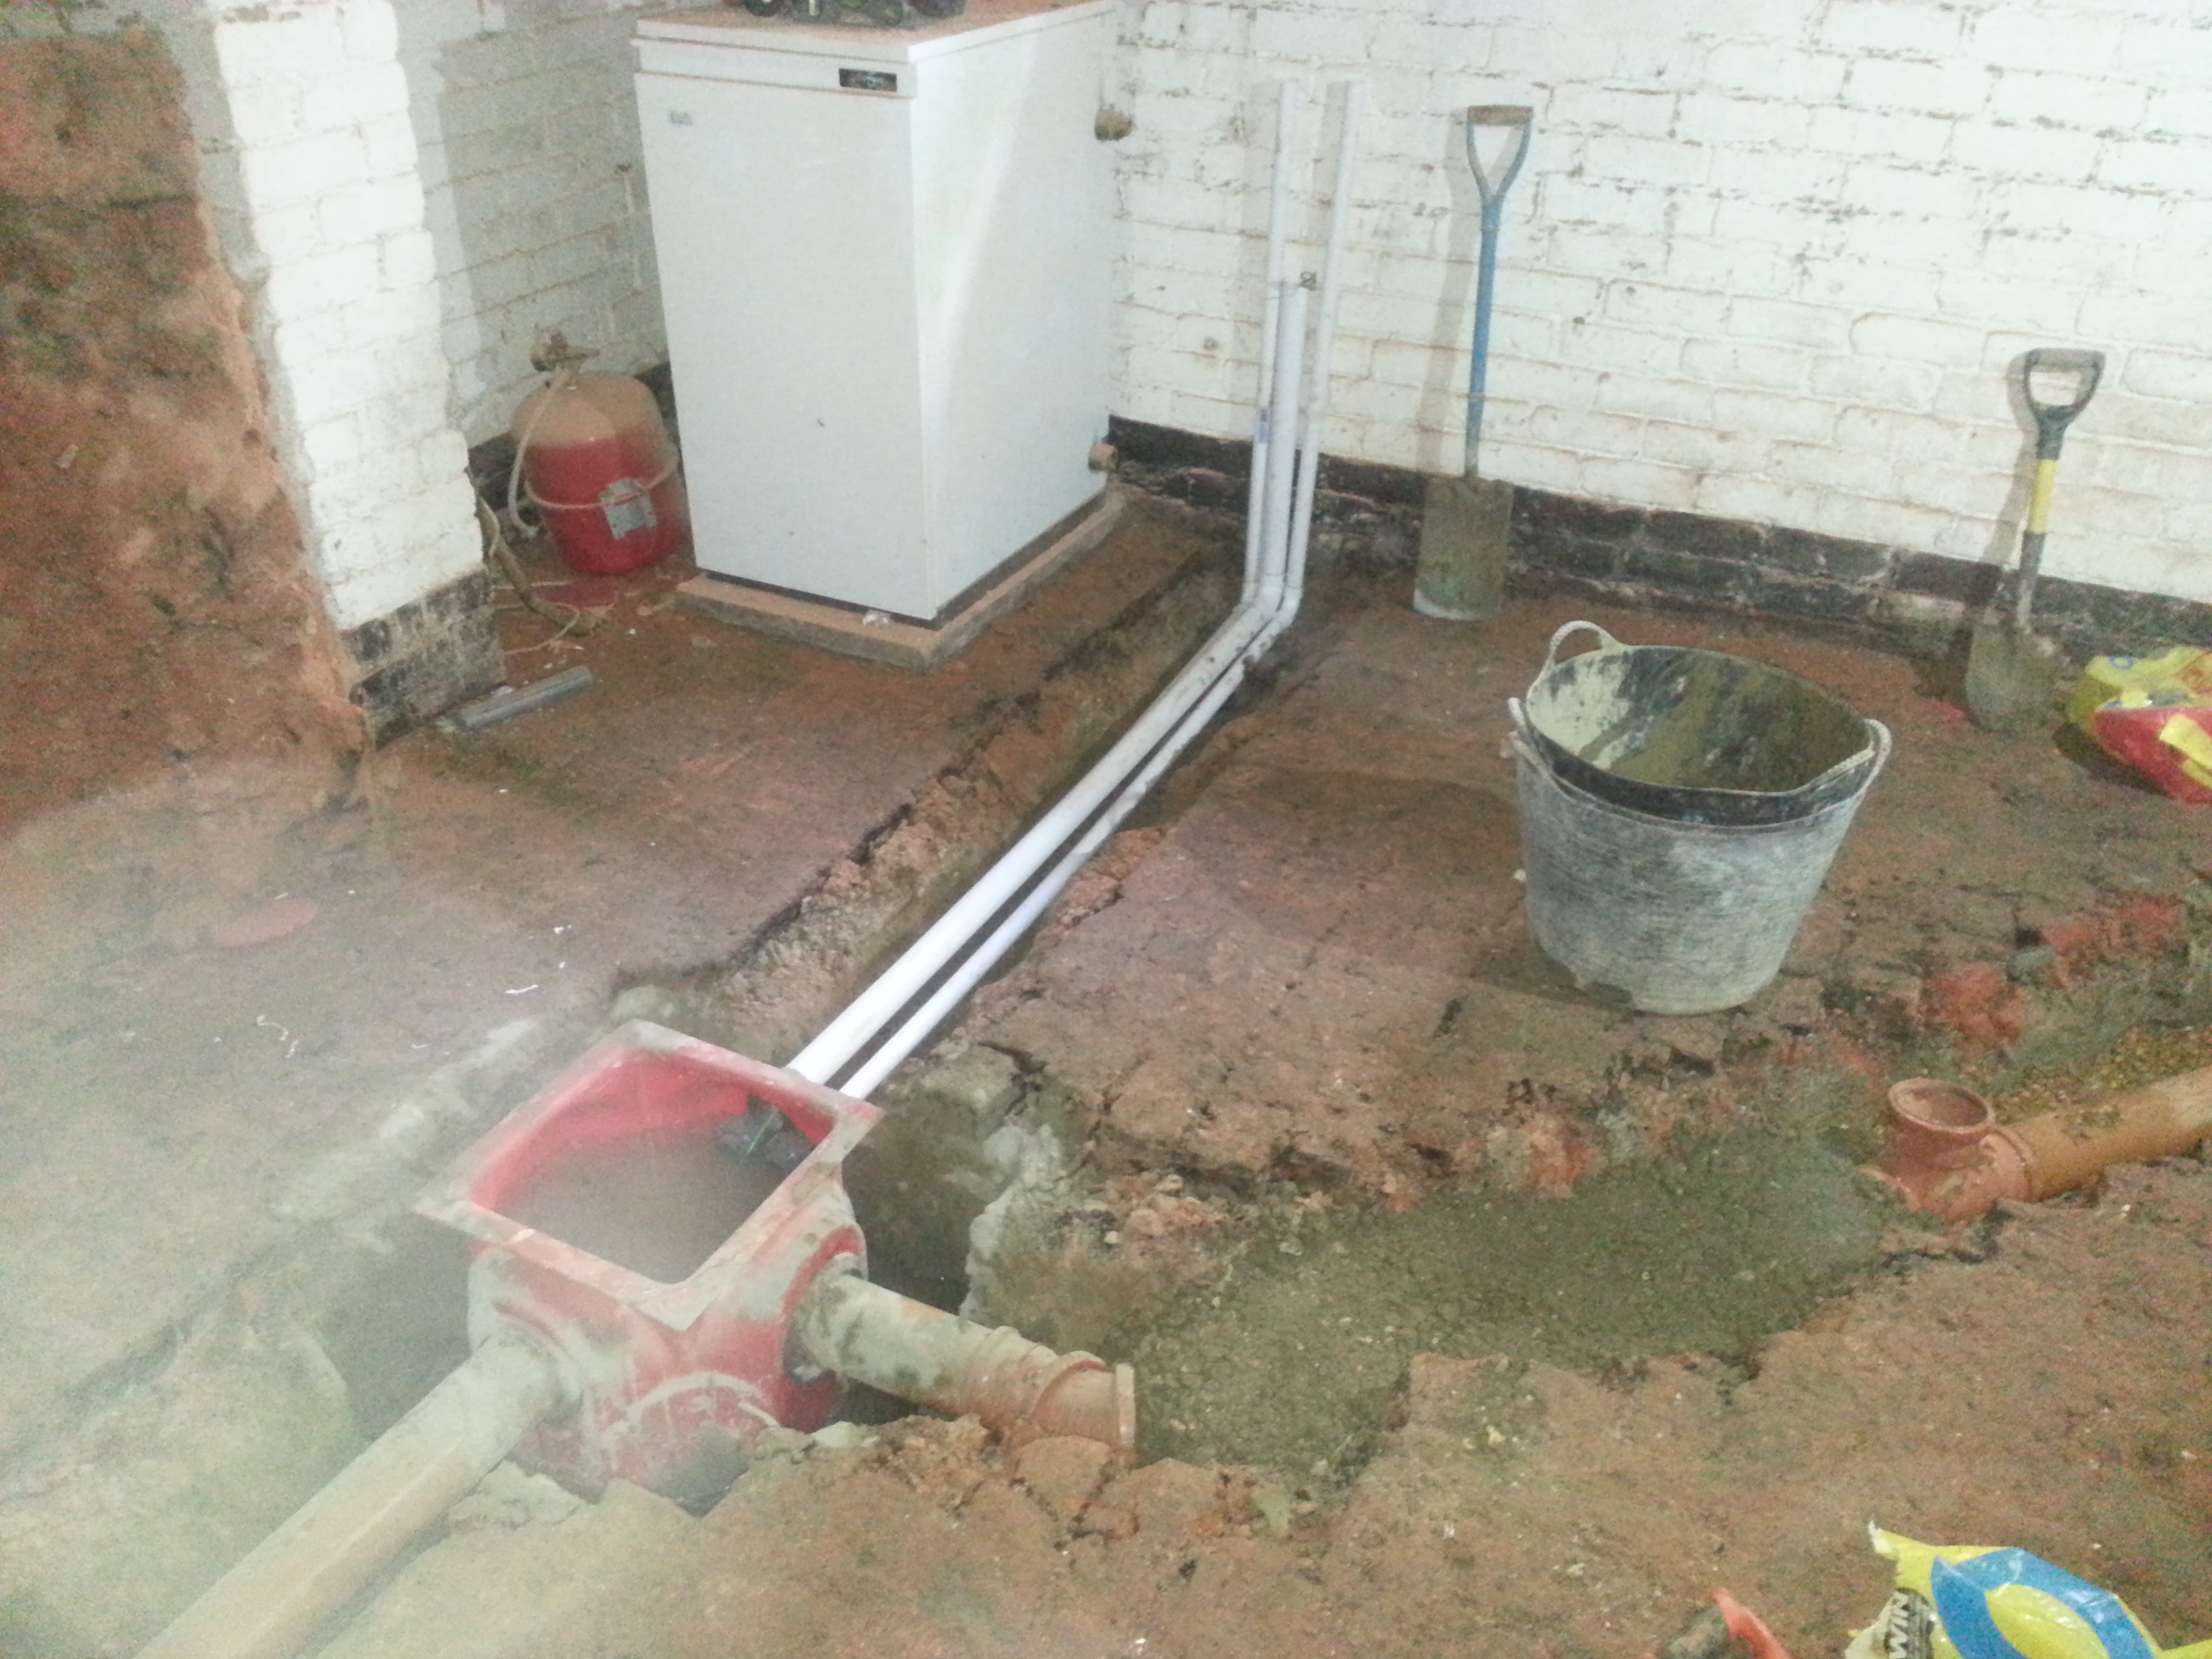 Discharge and power pipes for the sump along with underground drainage to carry water